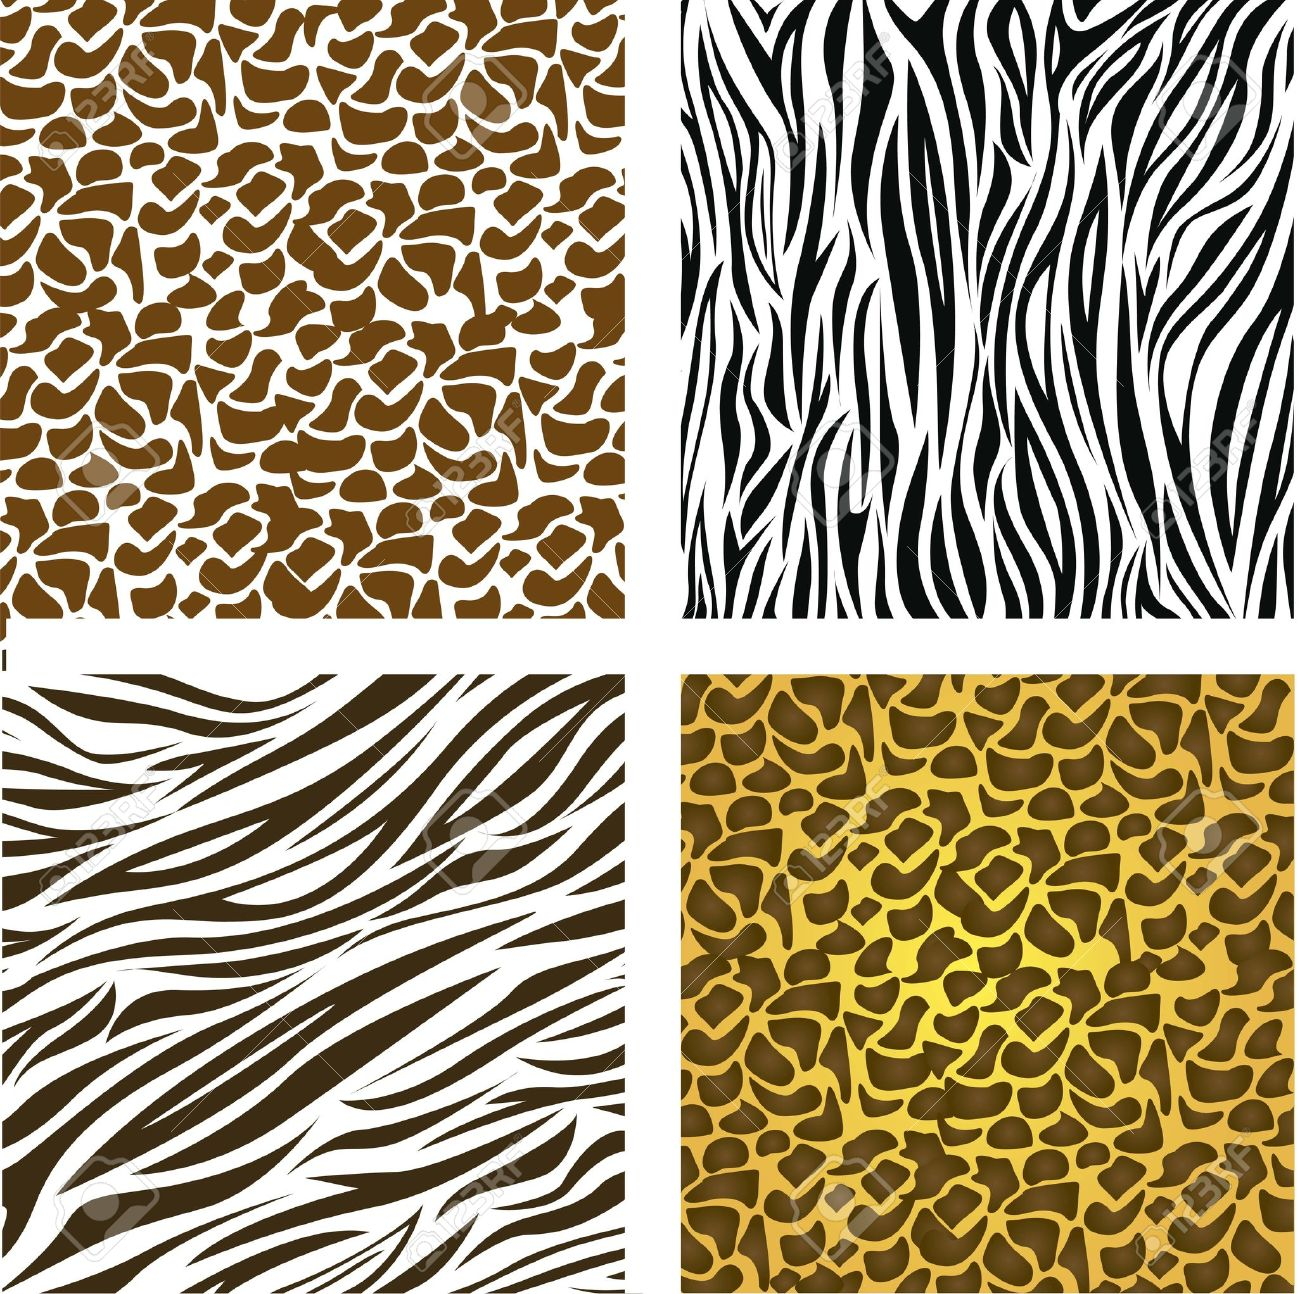 vector pattern of animal print vector illustration - Animal Pictures To Print Free